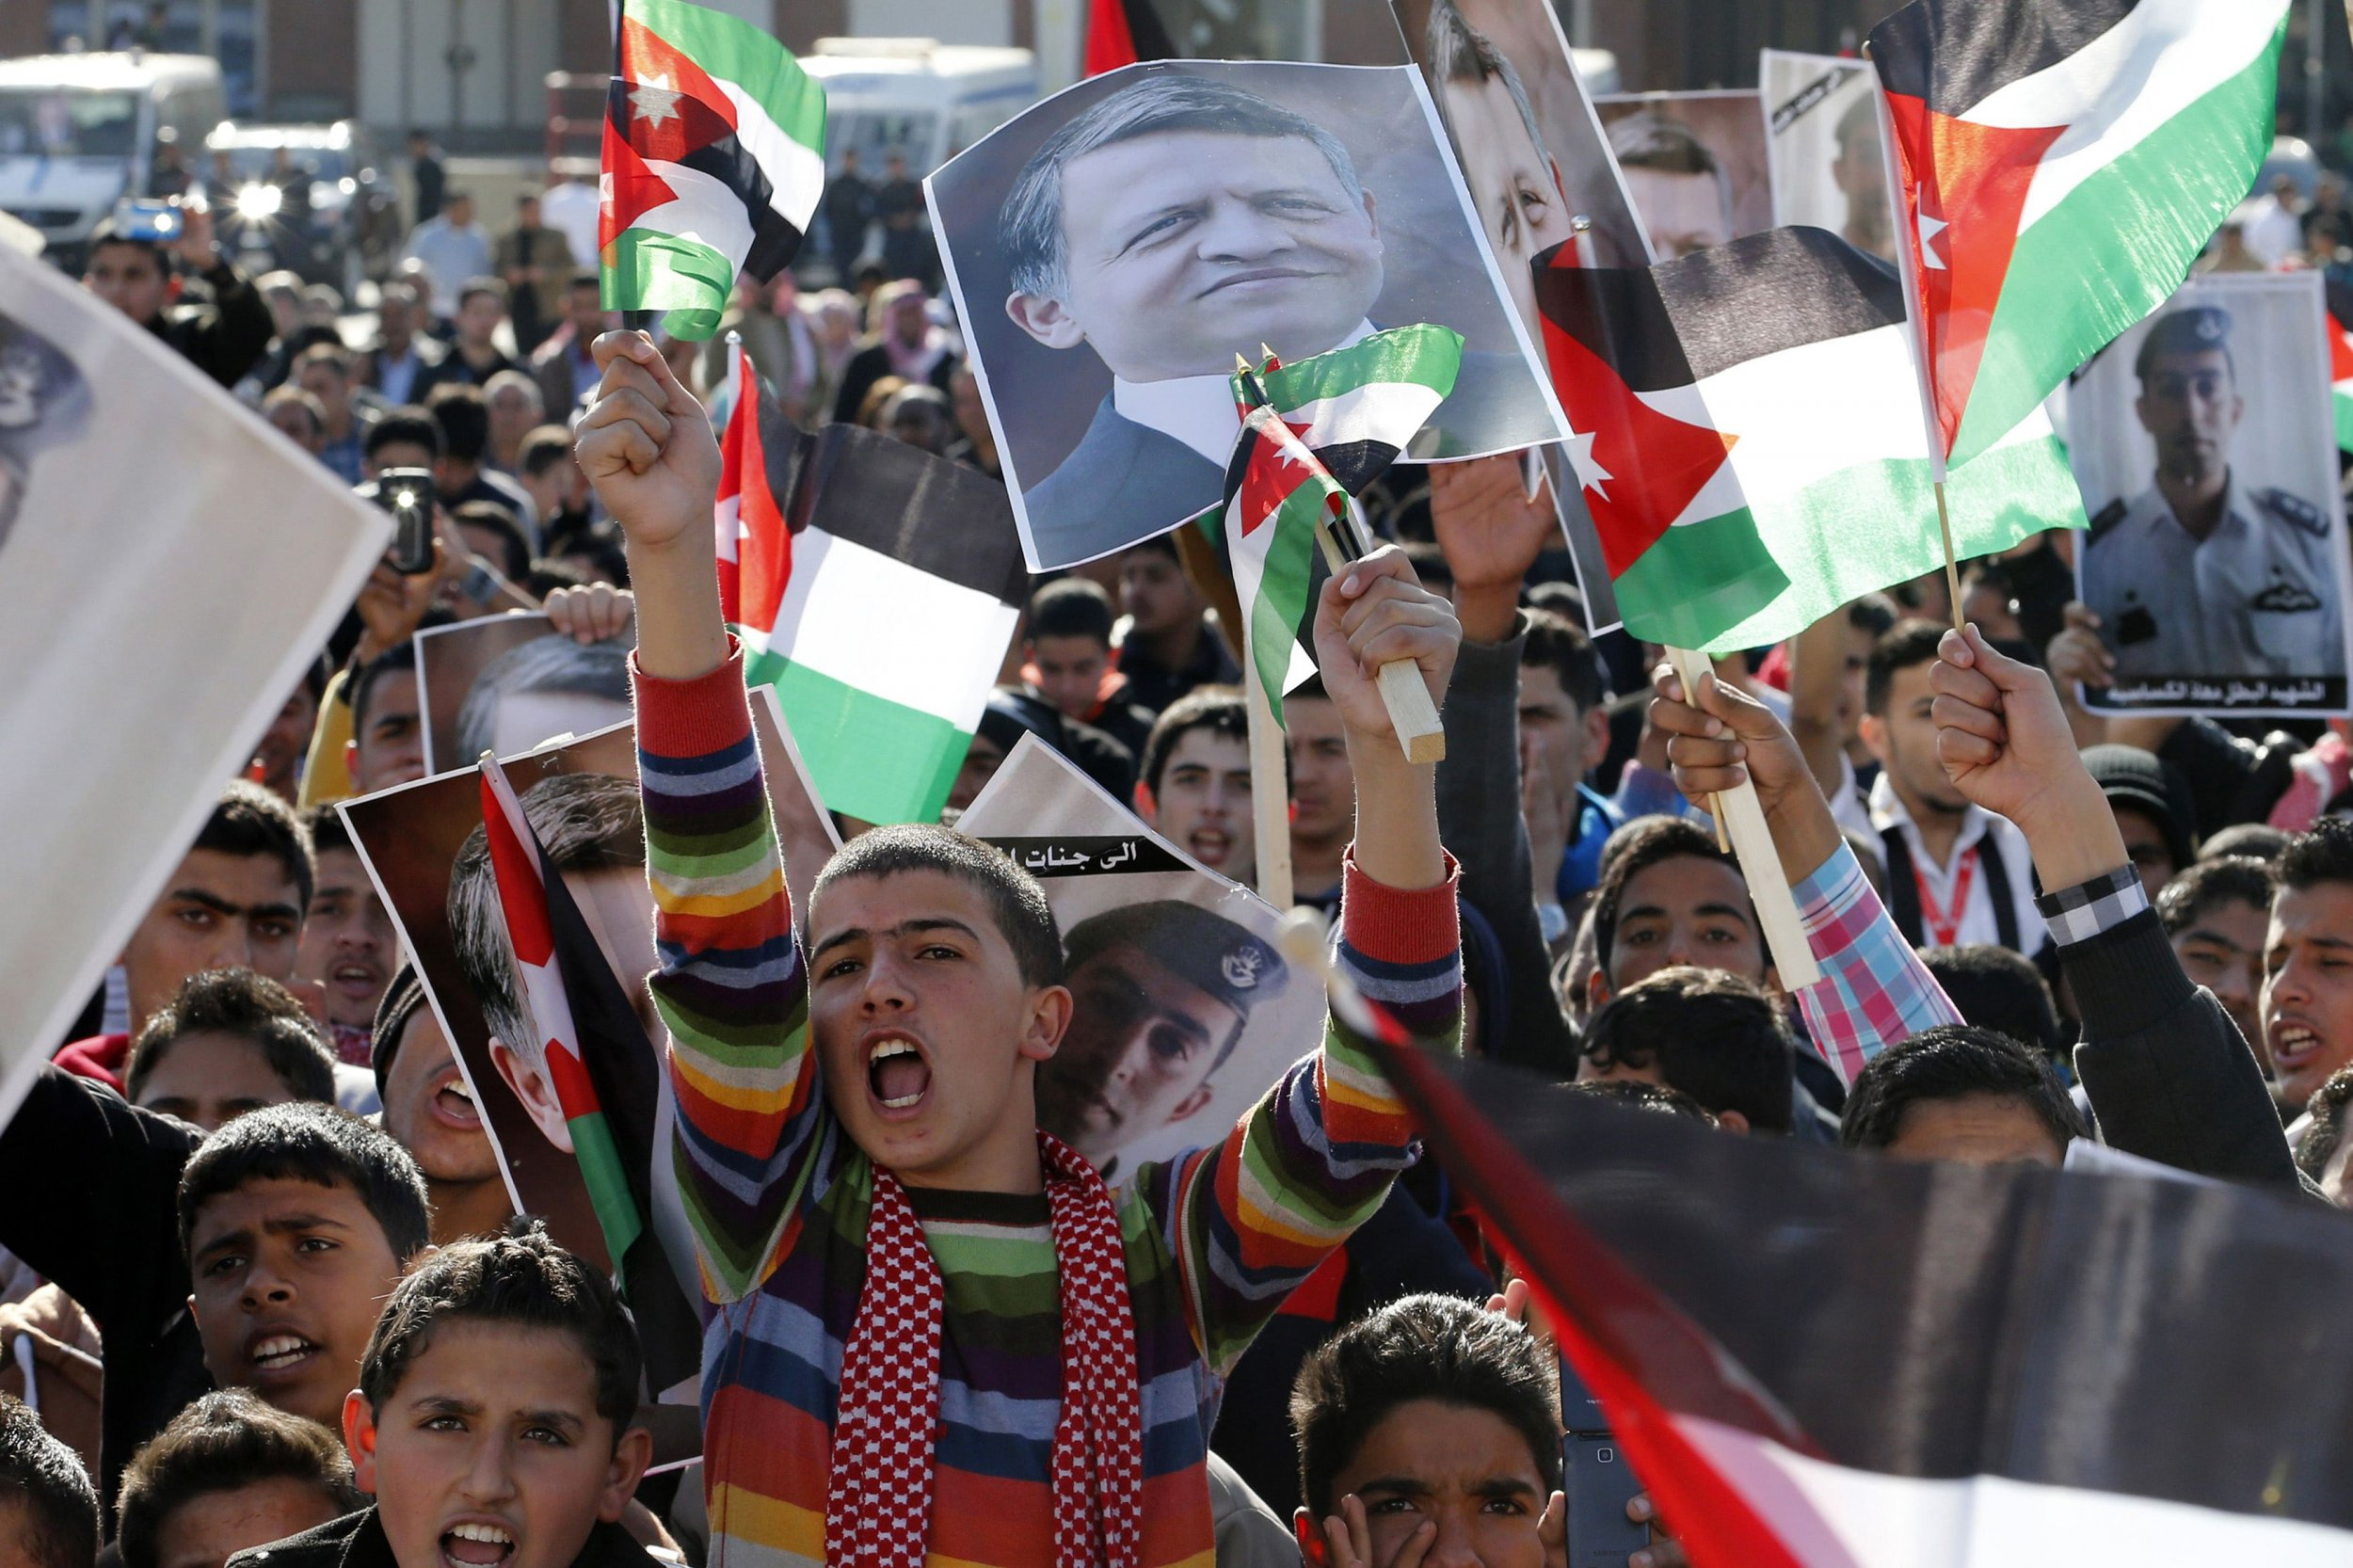 Protesters hold up pictures of Jordan's King Abdullah and pilot Muath al-Kasaesbeh